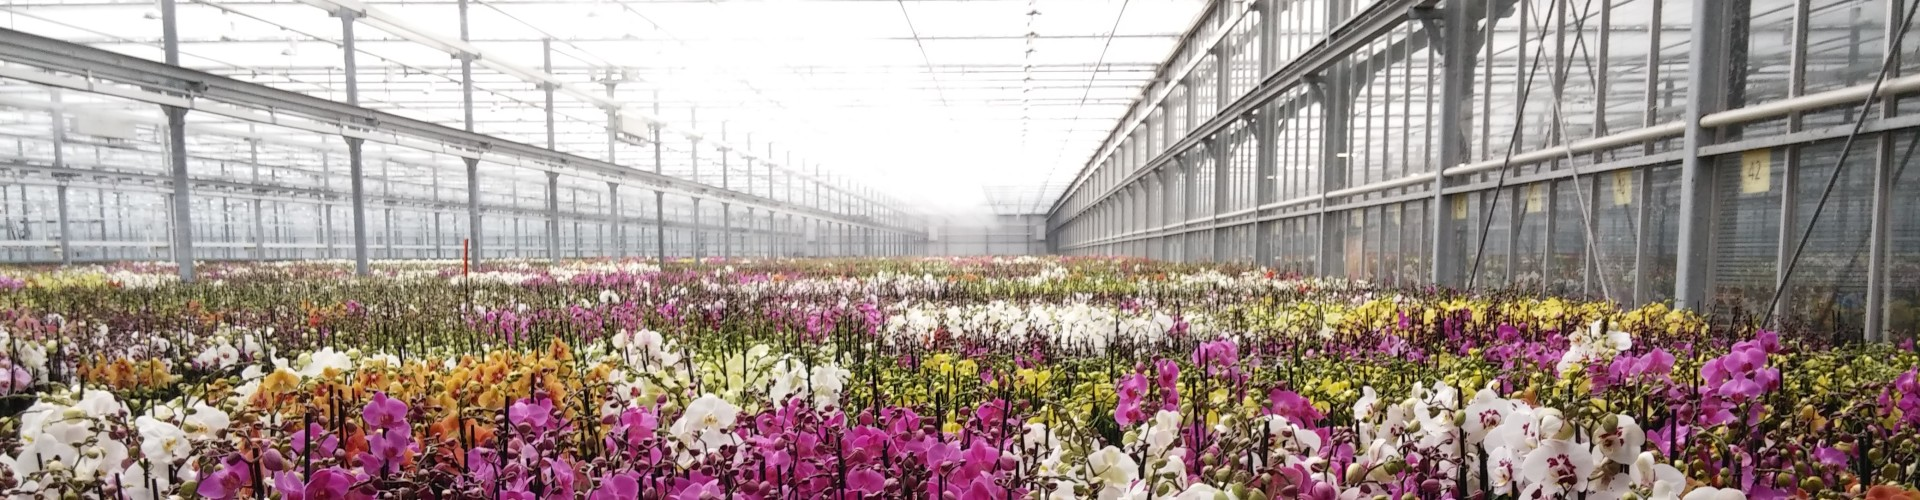 Phalaenopsis Orchids in greenhouse